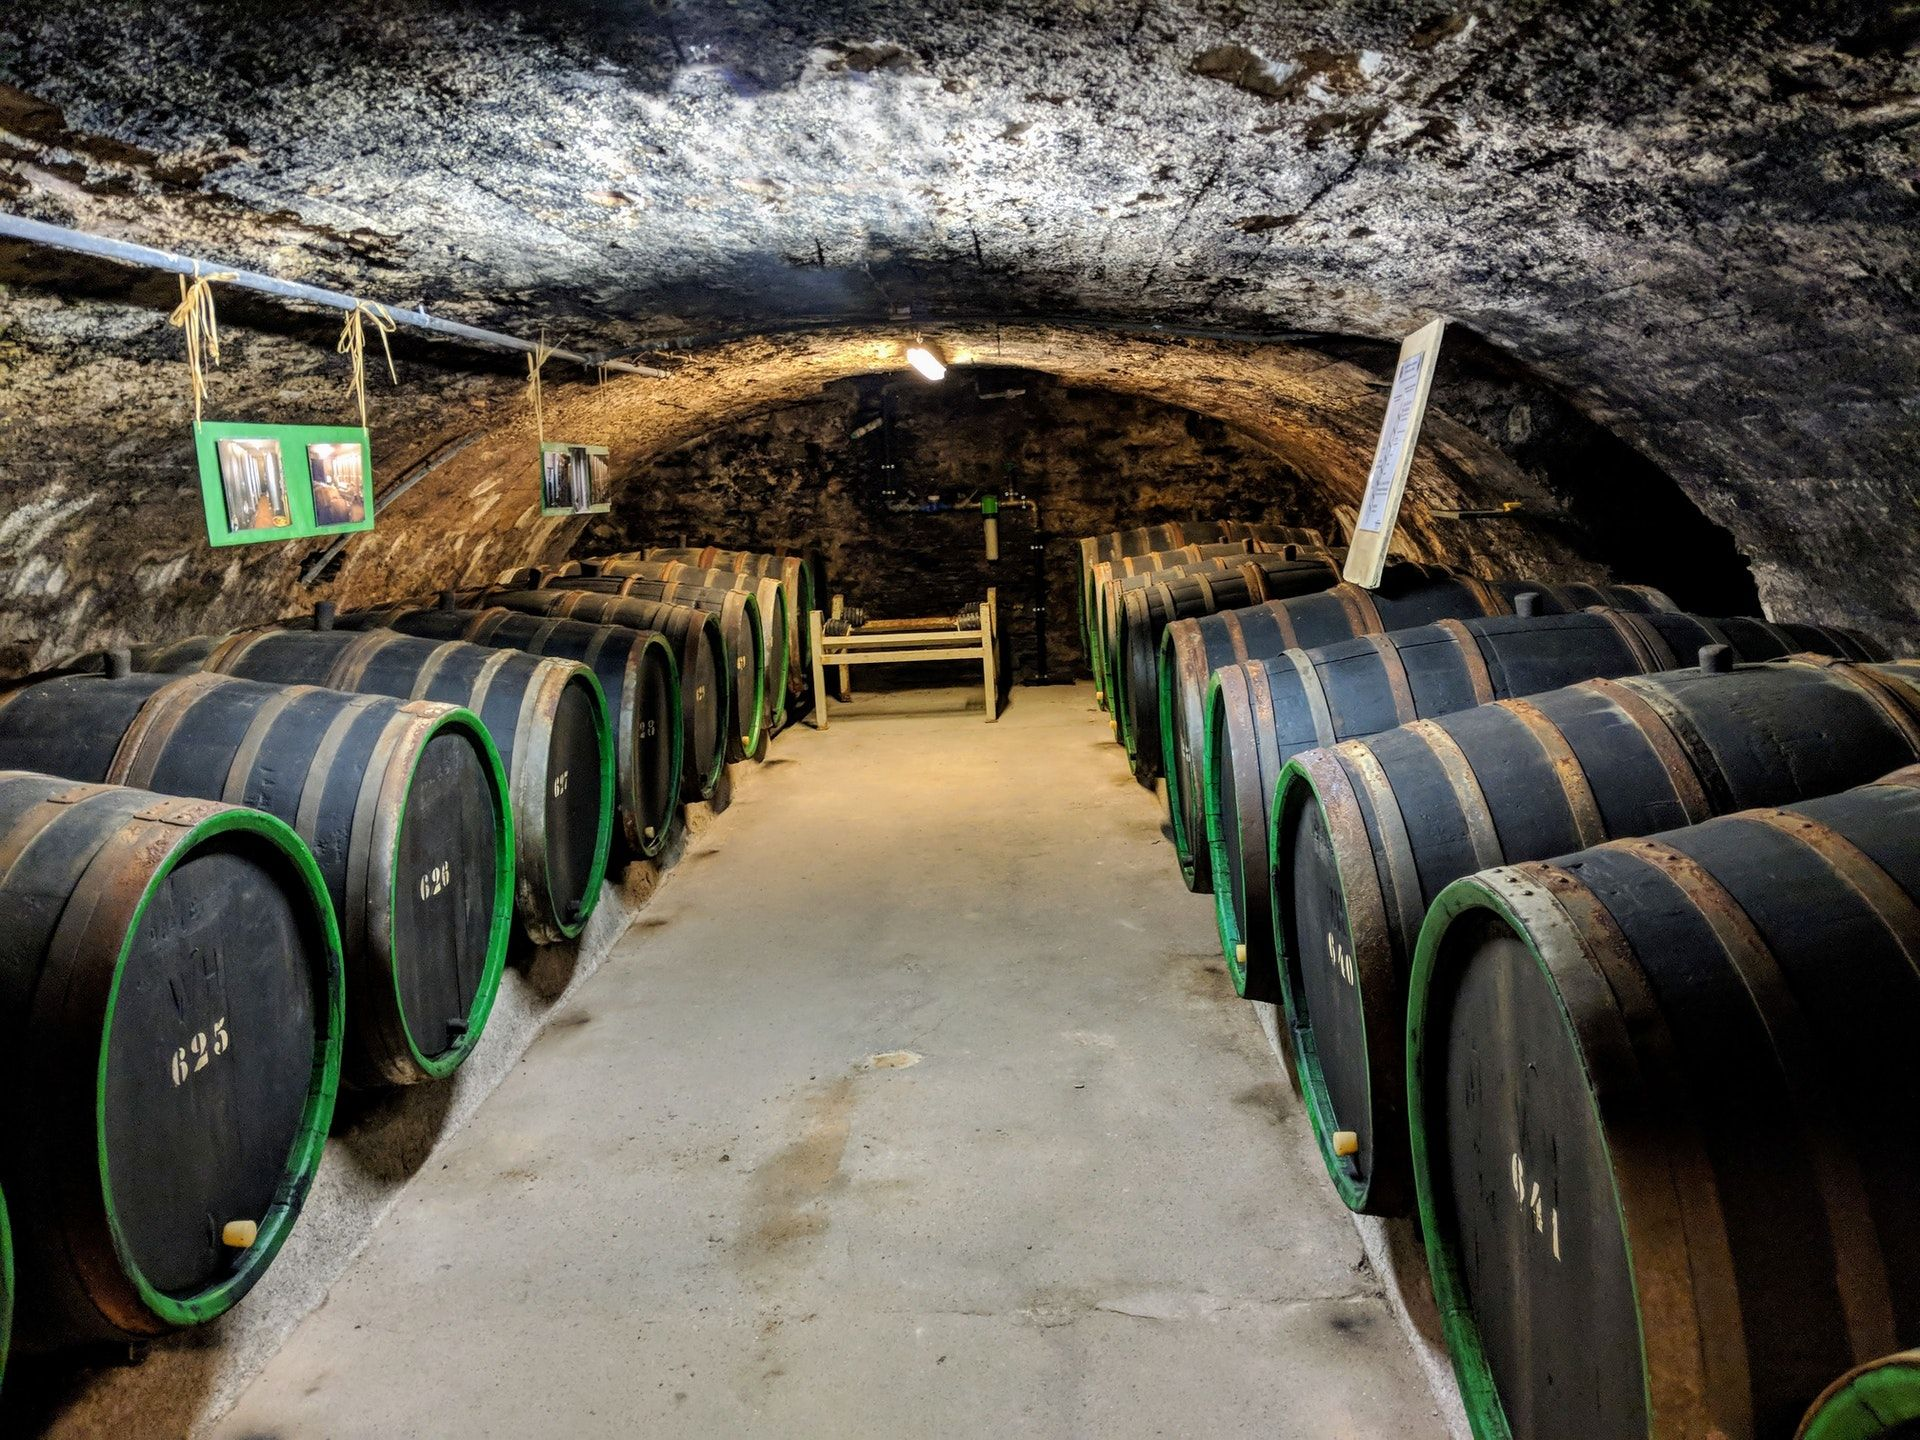 Celler with wine barrells; WSET Level 2 exam